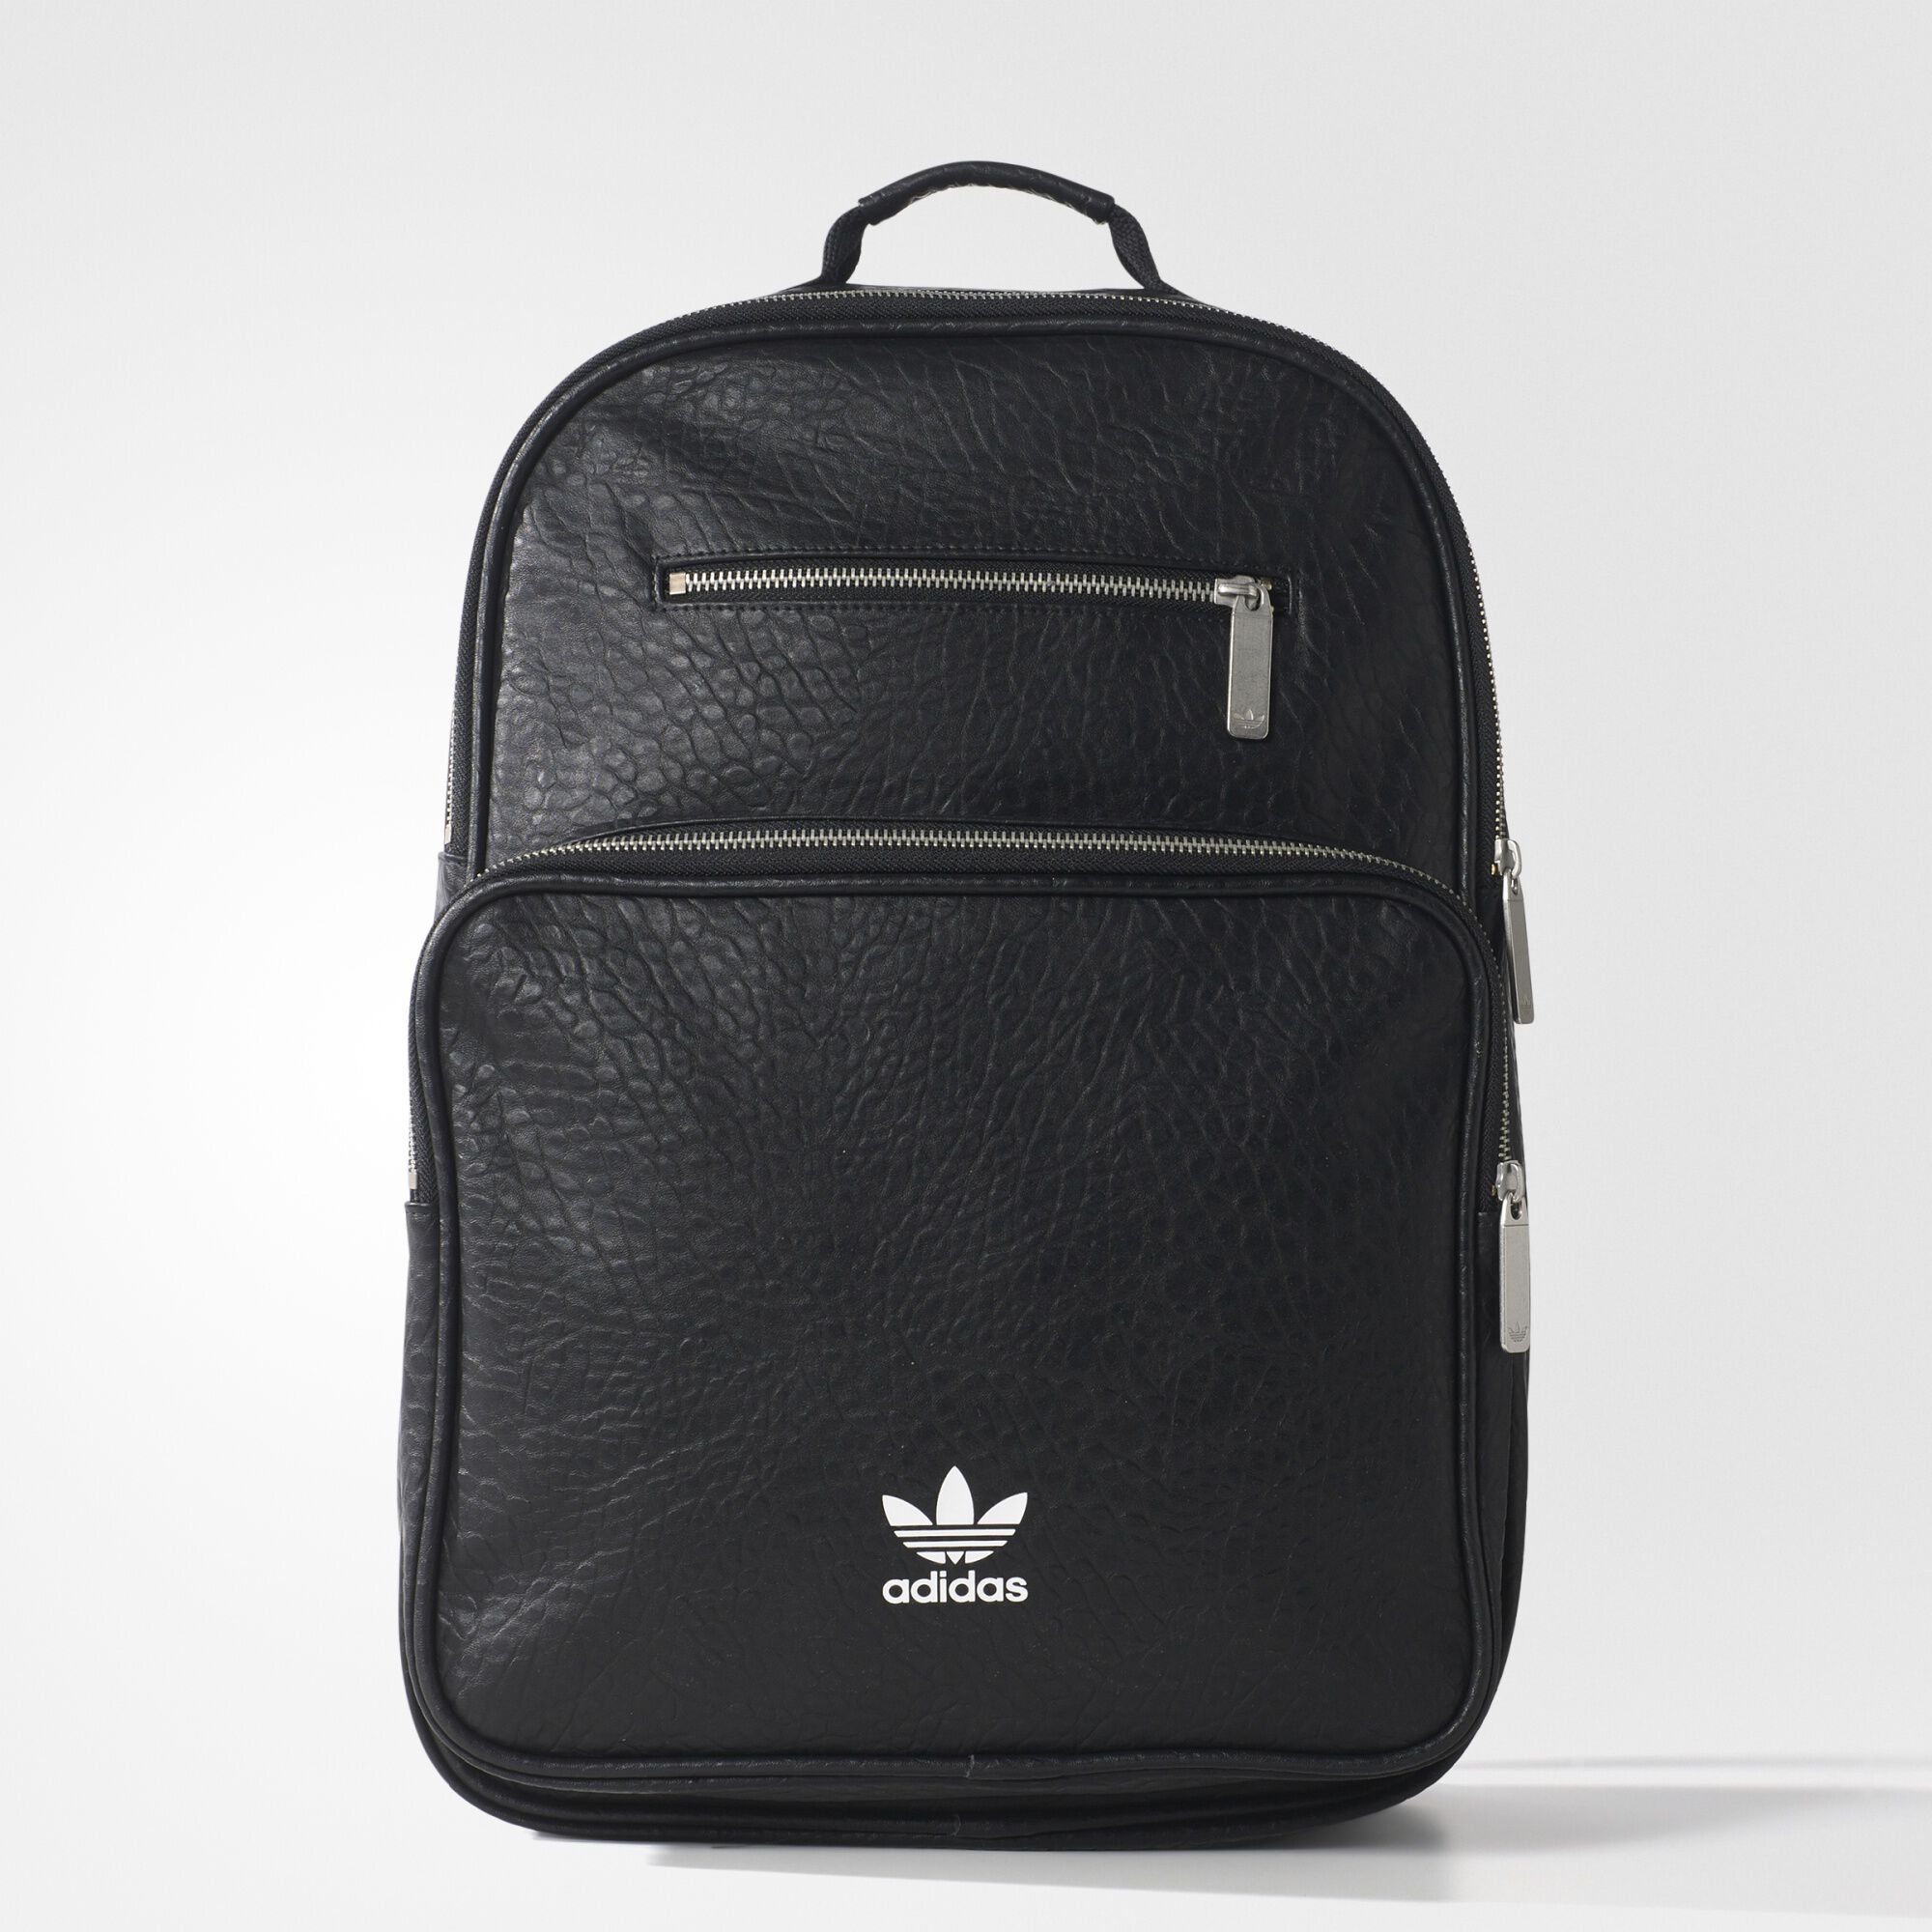 cb78c8617340 Buy adidas string backpack   OFF77% Discounted